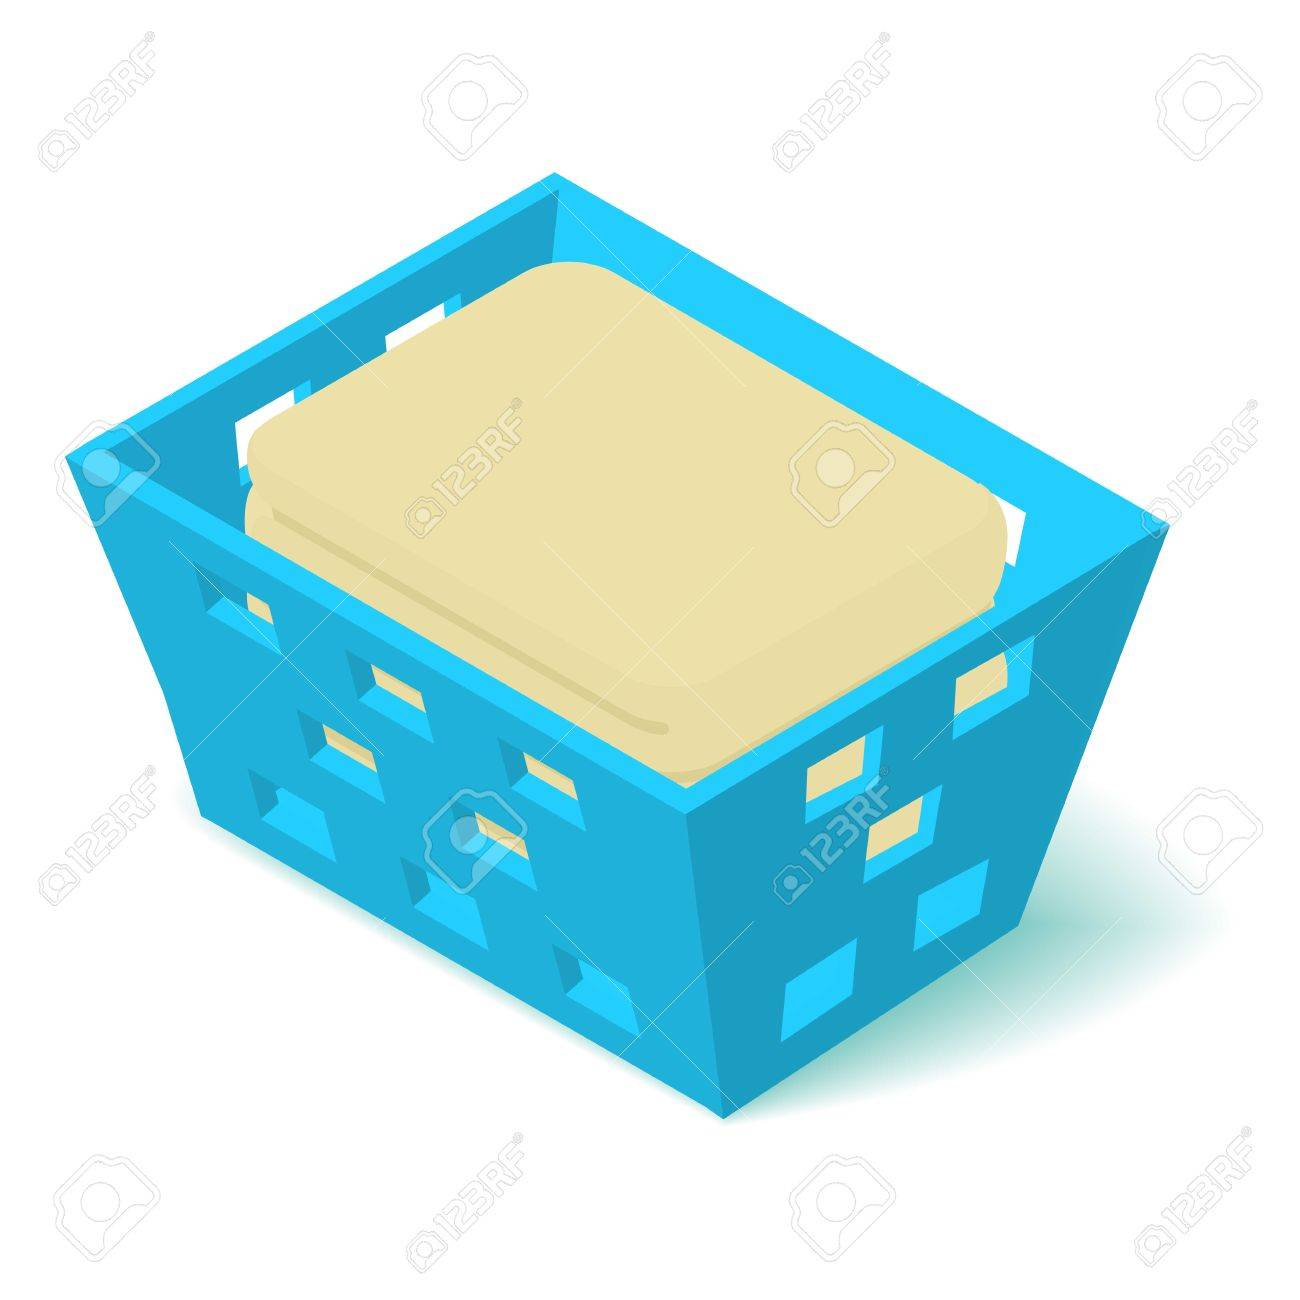 hight resolution of laundry basket icon isometric 3d style stock vector 84477583